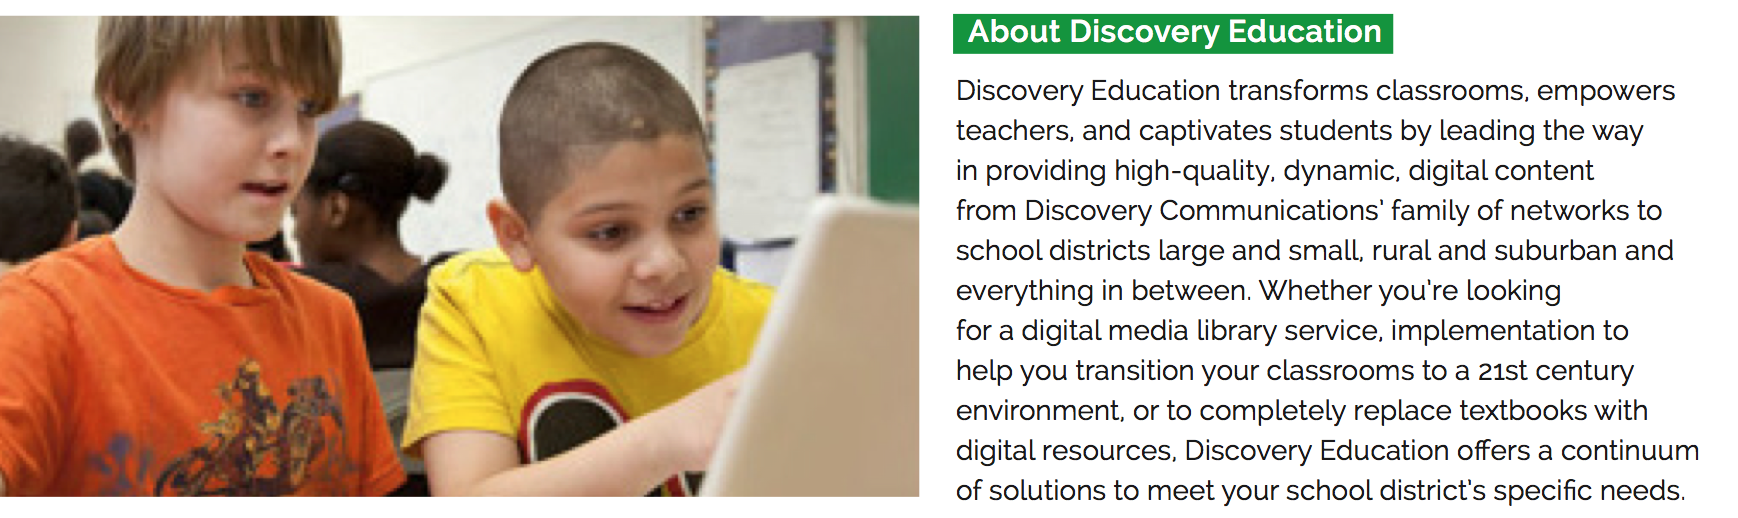 About Discovery Education